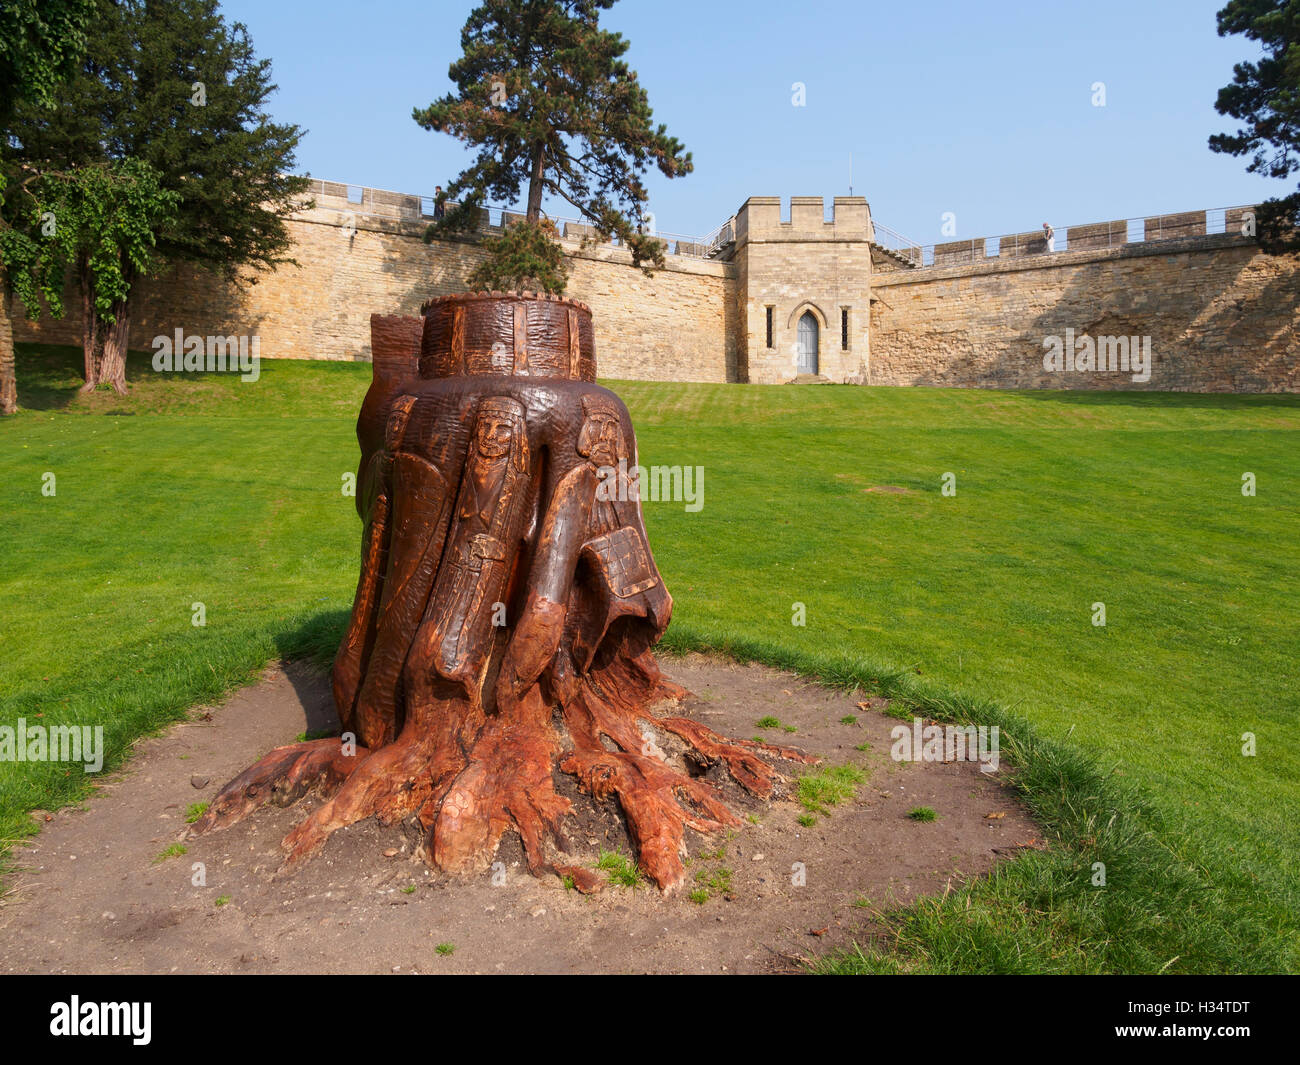 Carved tree stump in the grounds of Lincoln Castle - Stock Image